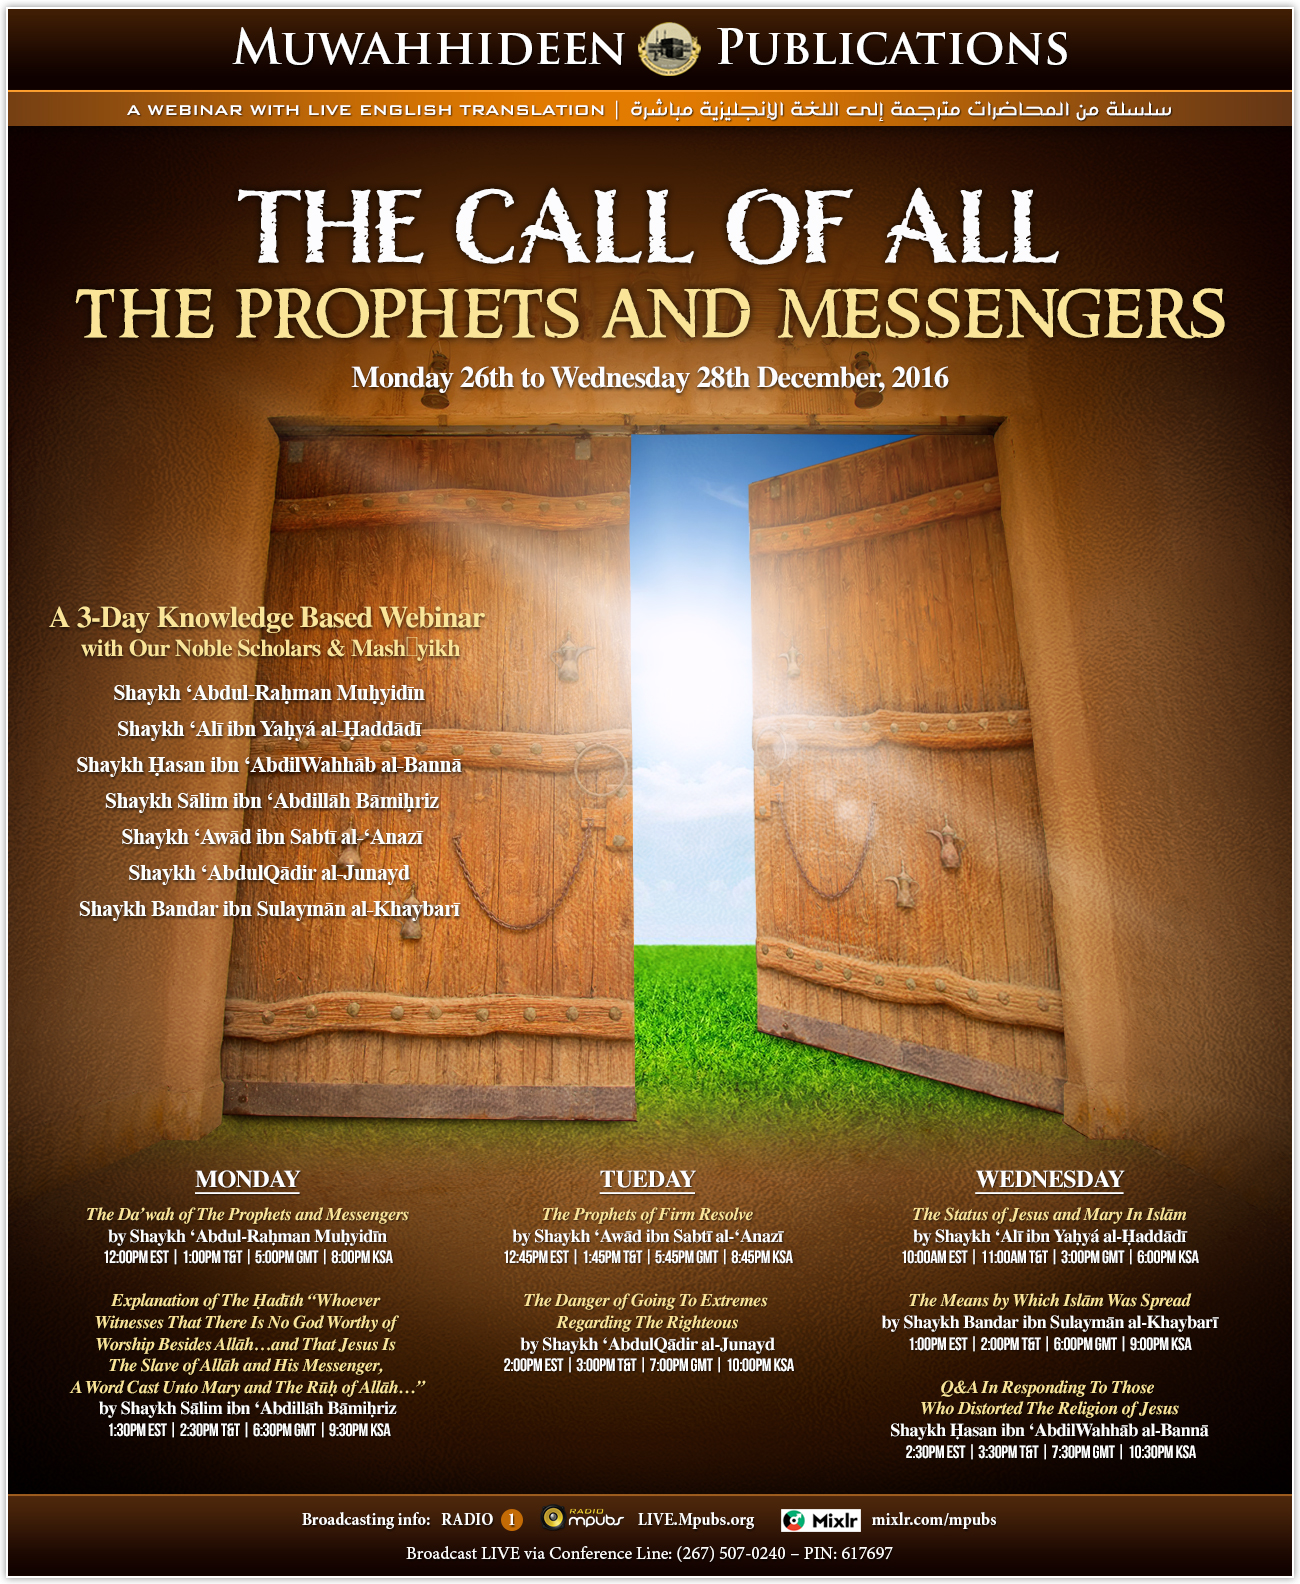 3-Day Webinar with The Scholars and Mashaayikh